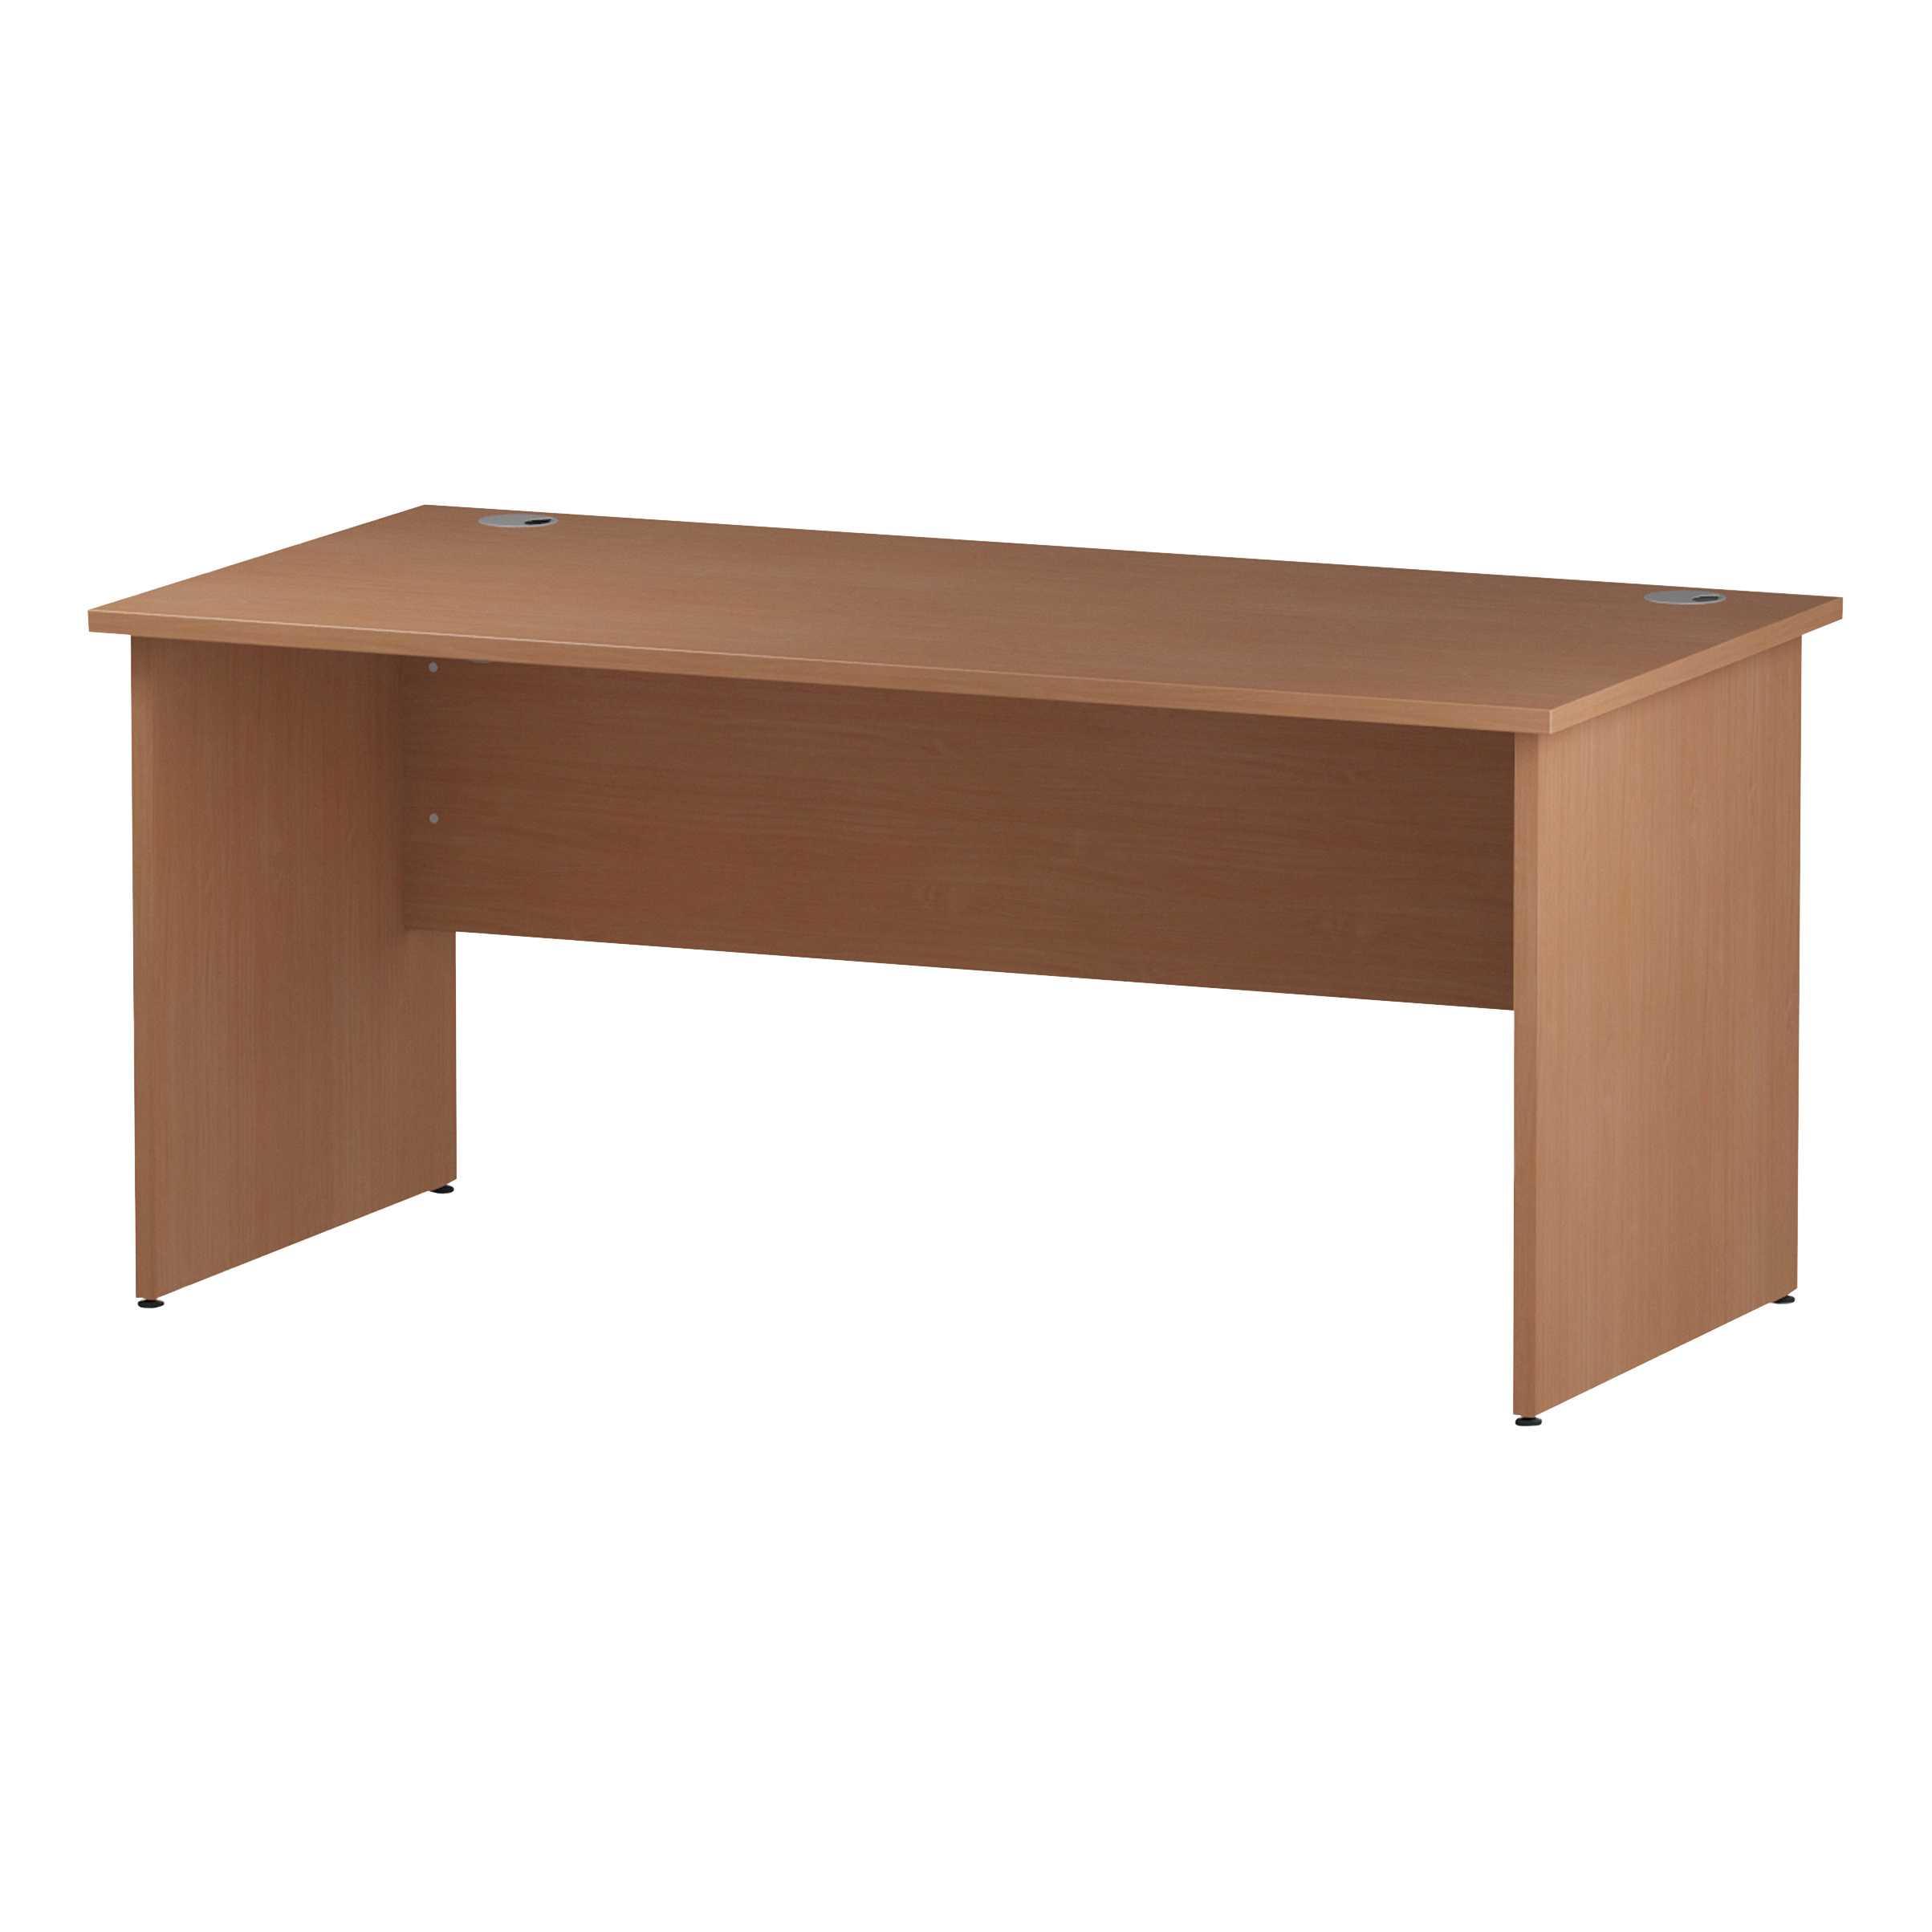 Trexus Rectangular Desk Panel End Leg 1600x800mm Beech Ref I000373